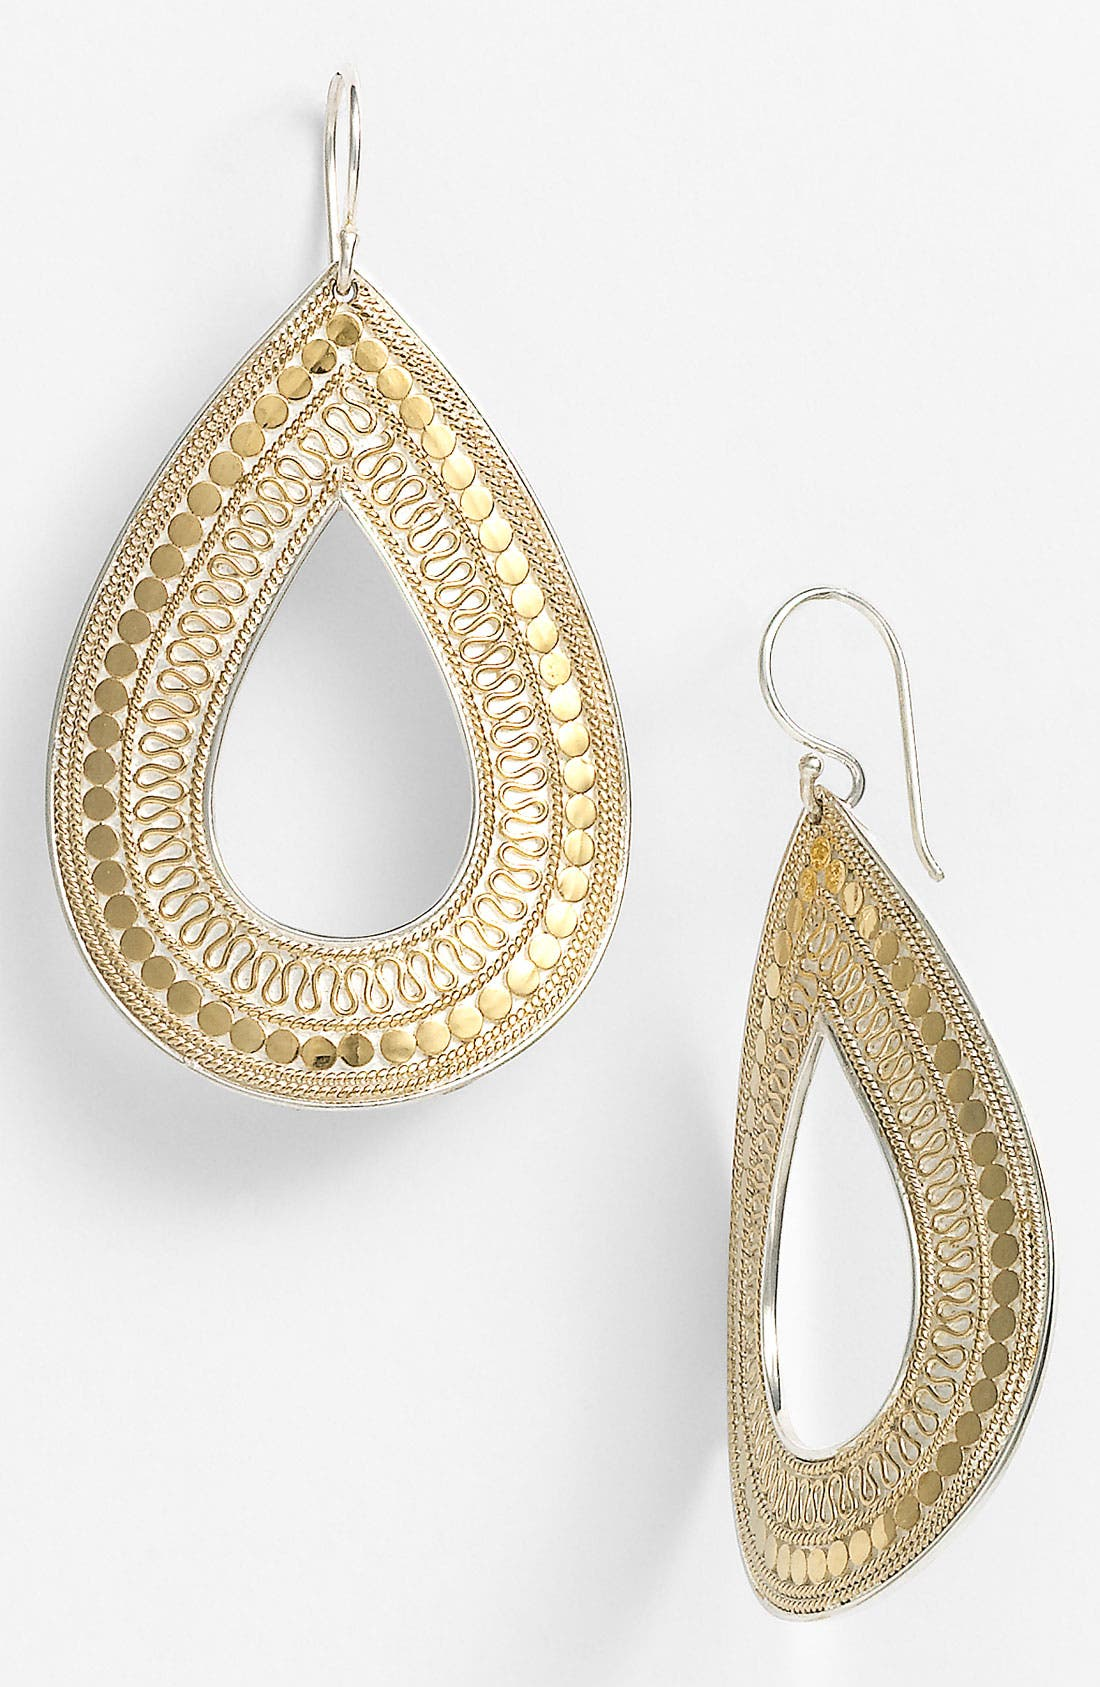 Main Image - Anna Beck 'Gili Wire' Teardrop Earrings (Nordstrom Exclusive)